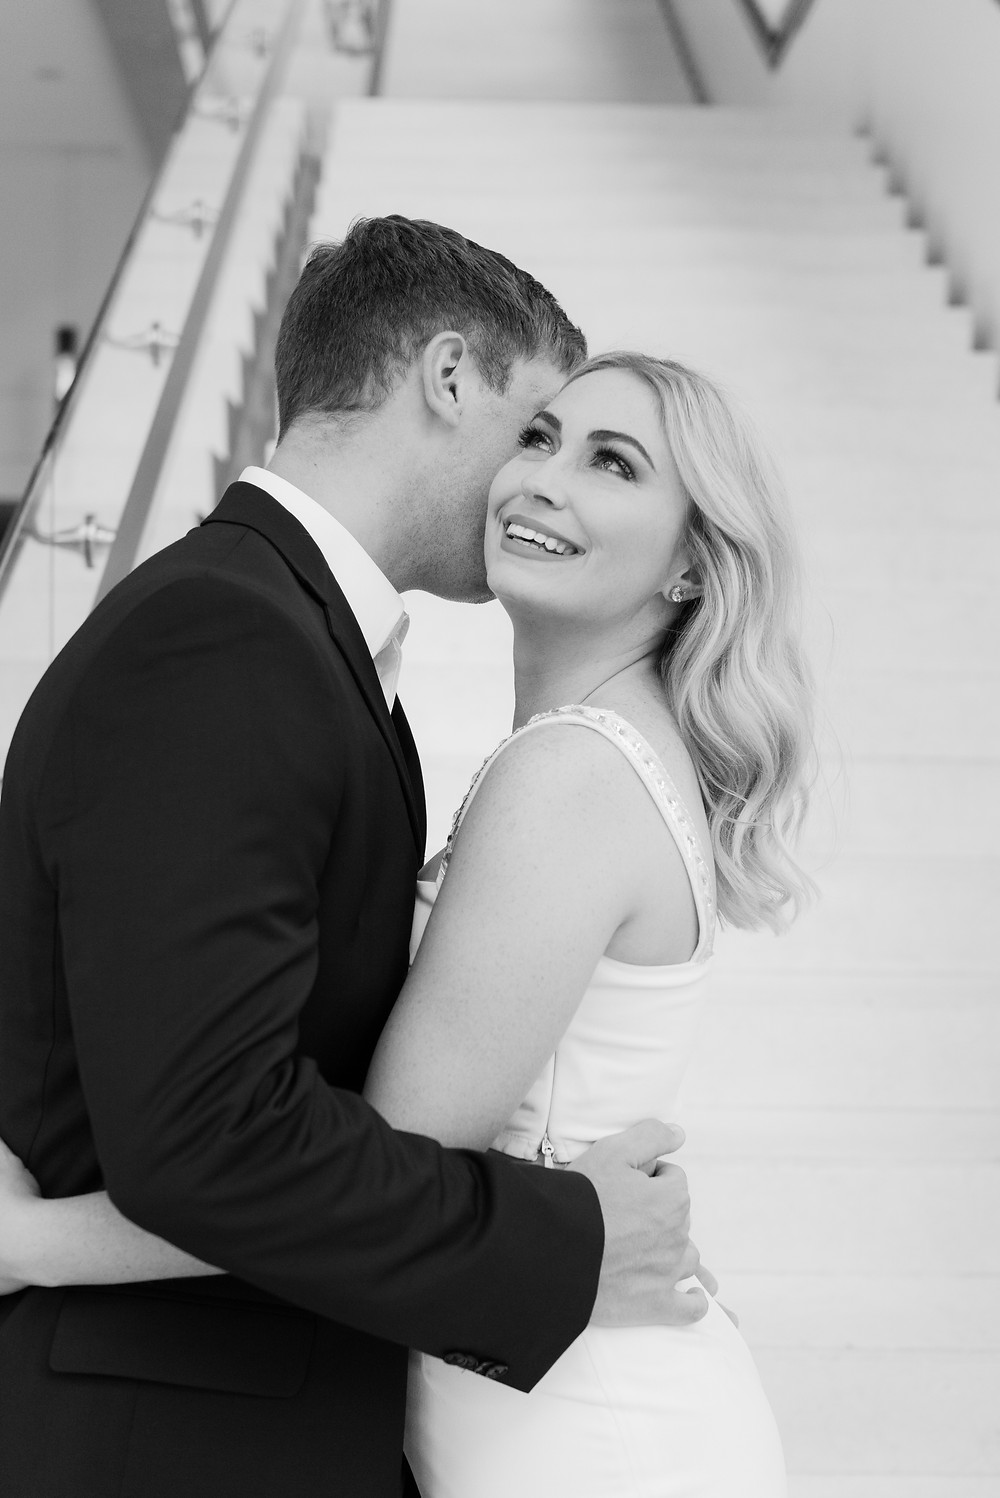 Fairmont Hotel Pittsburgh engagement session